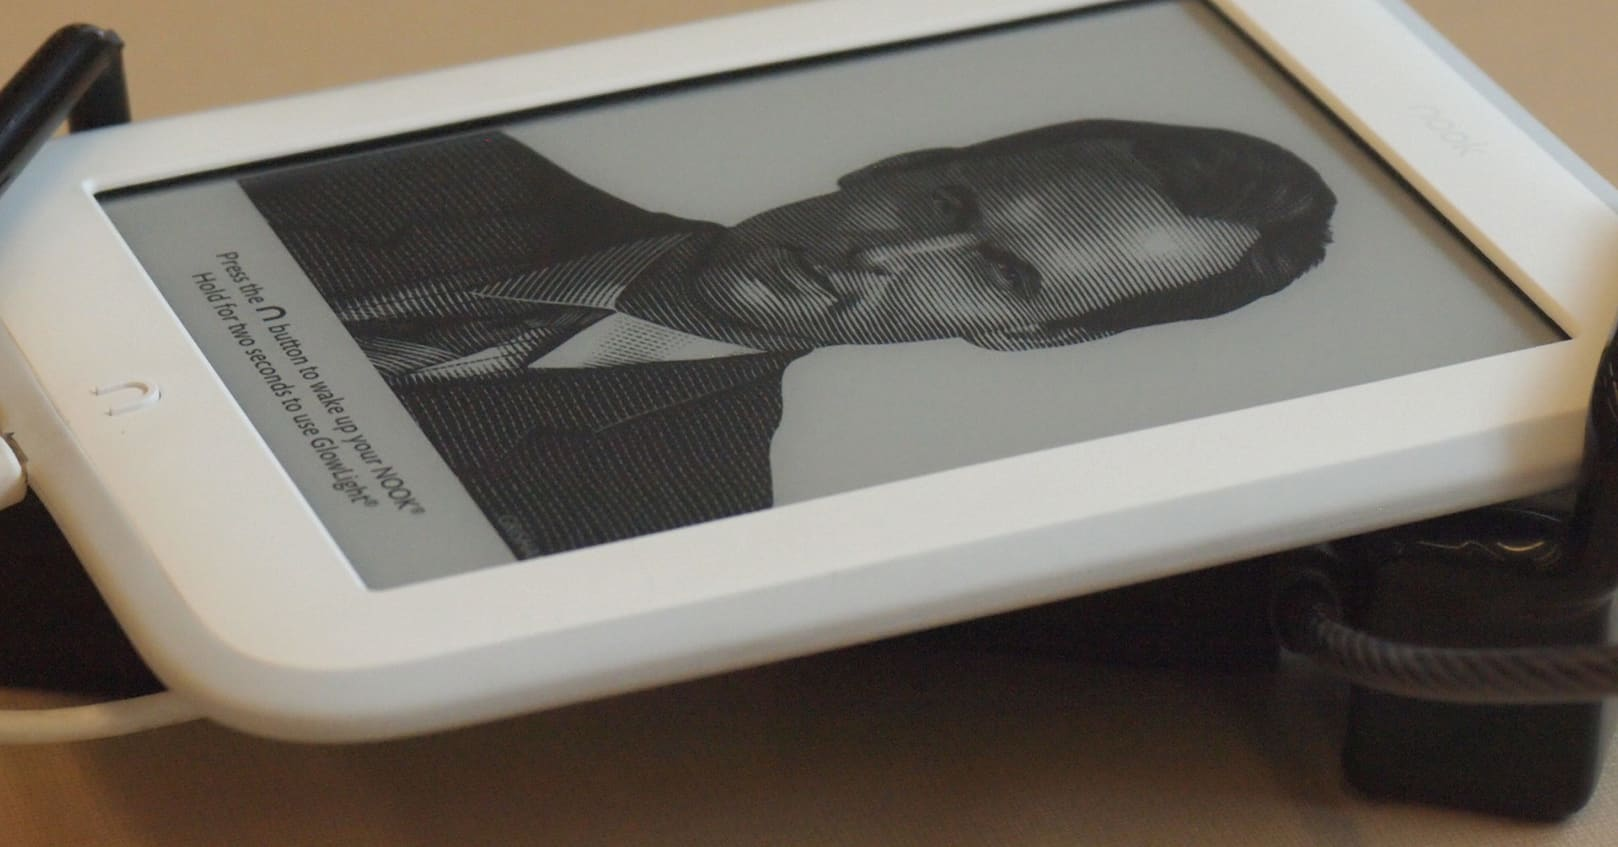 nook book and how to get free ebooks for it